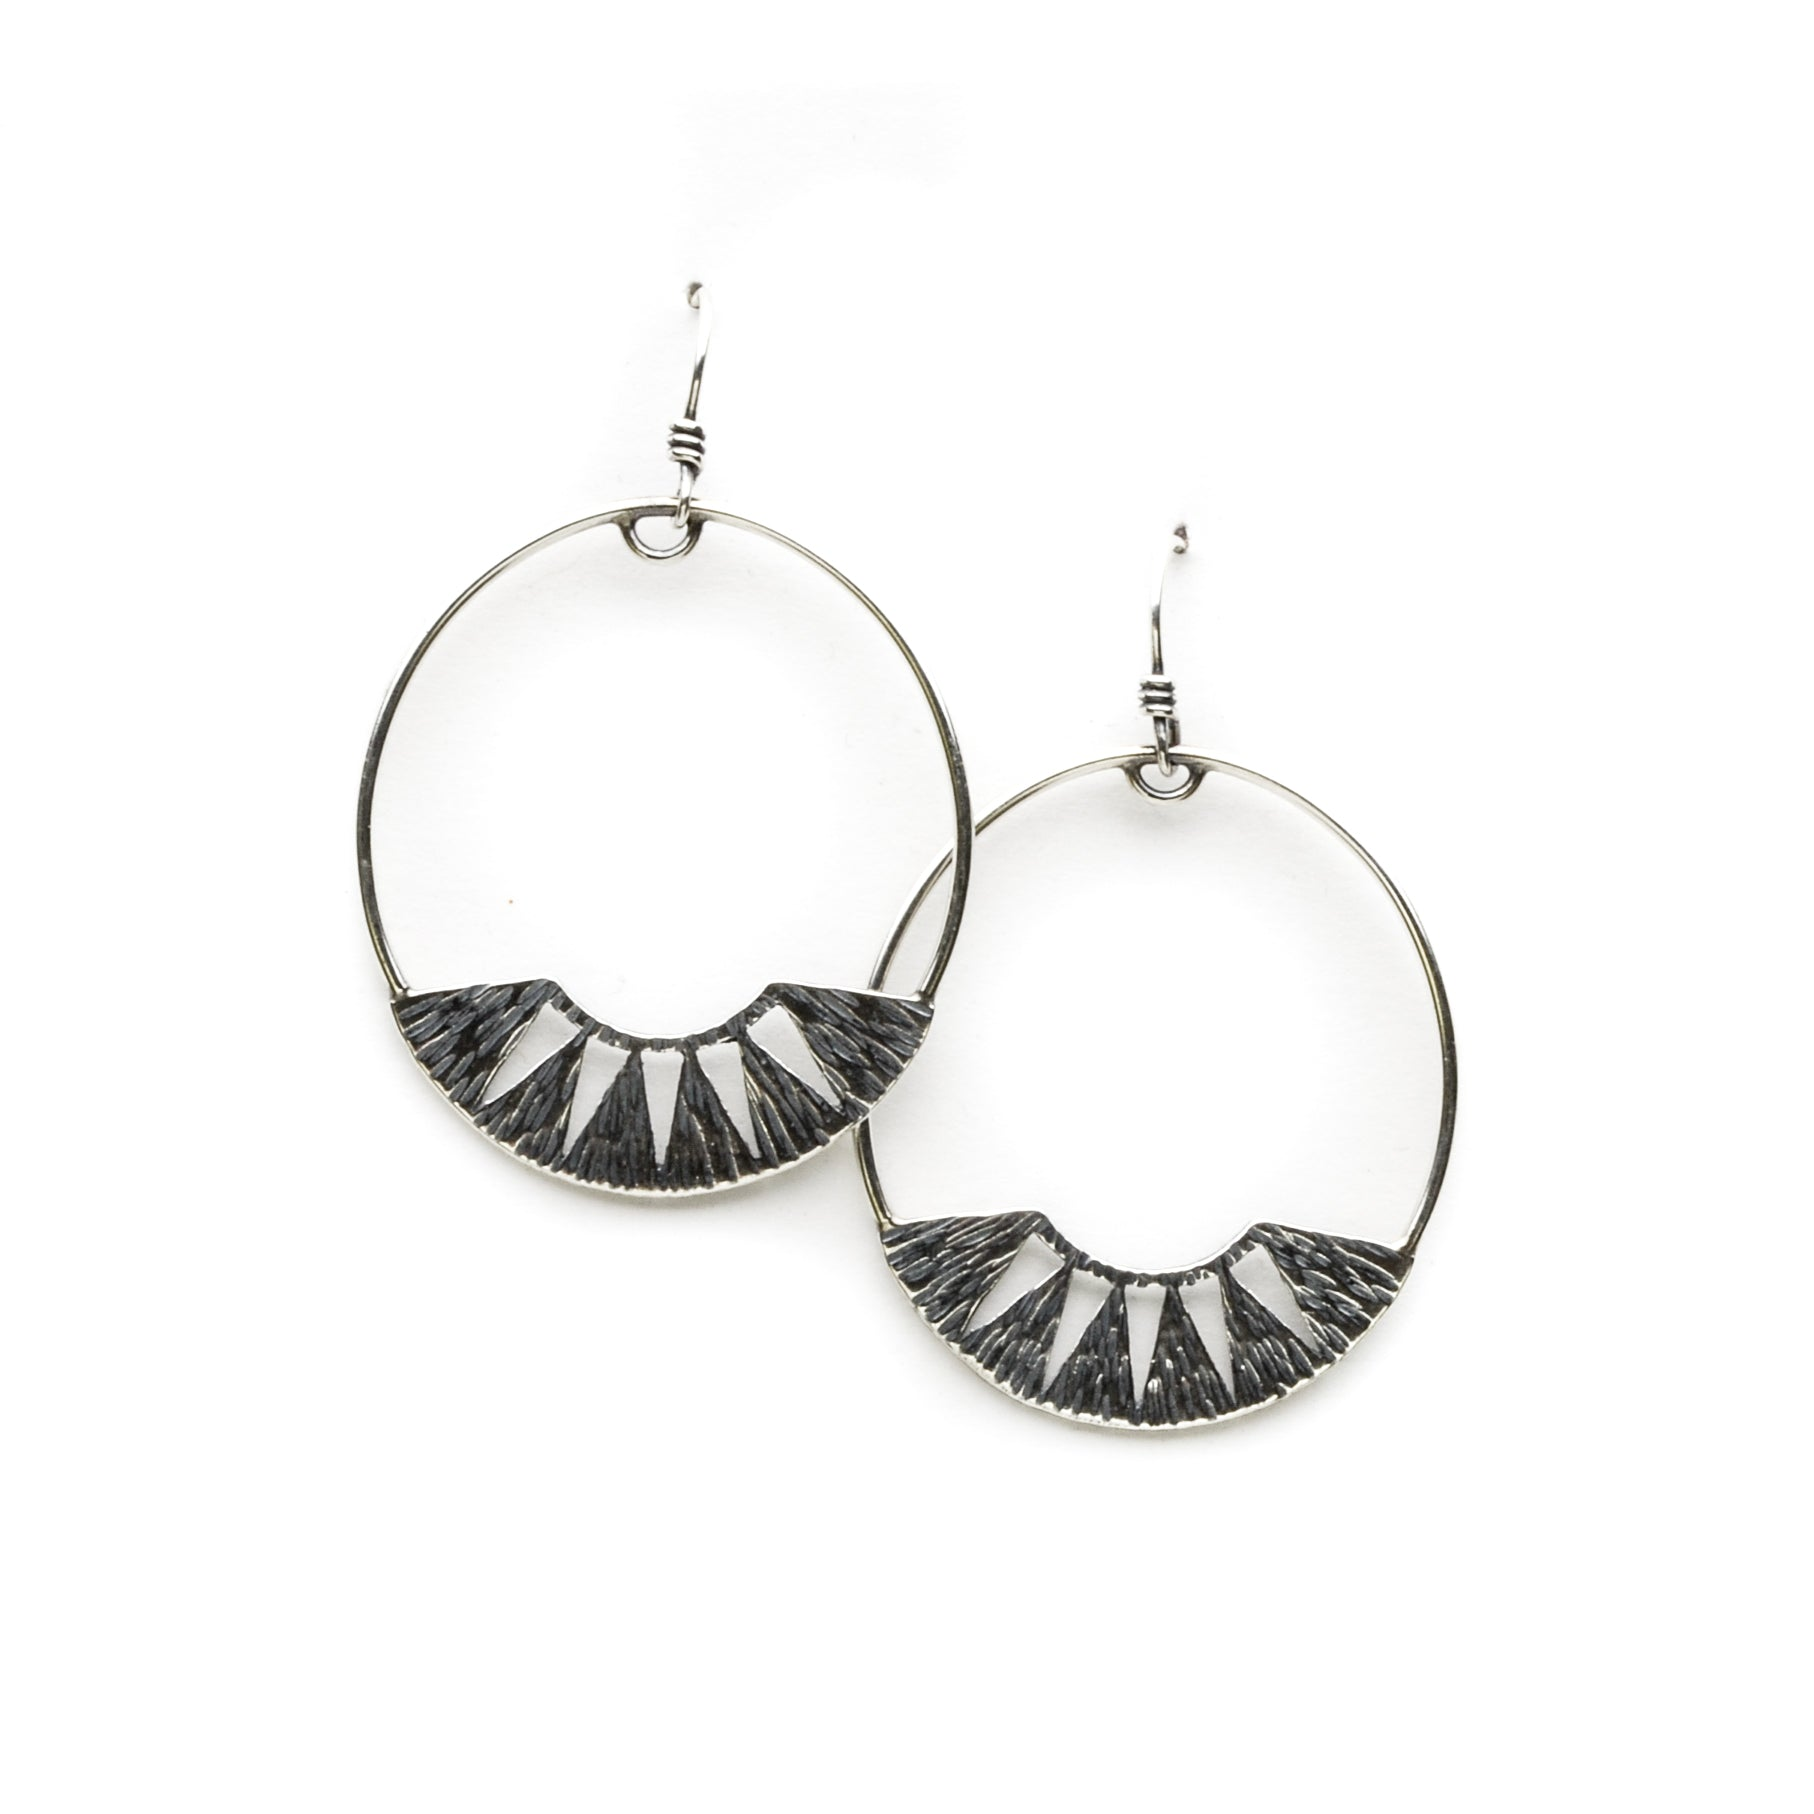 Juniper Hoop Earrings - Meltdown Studio Jewelry